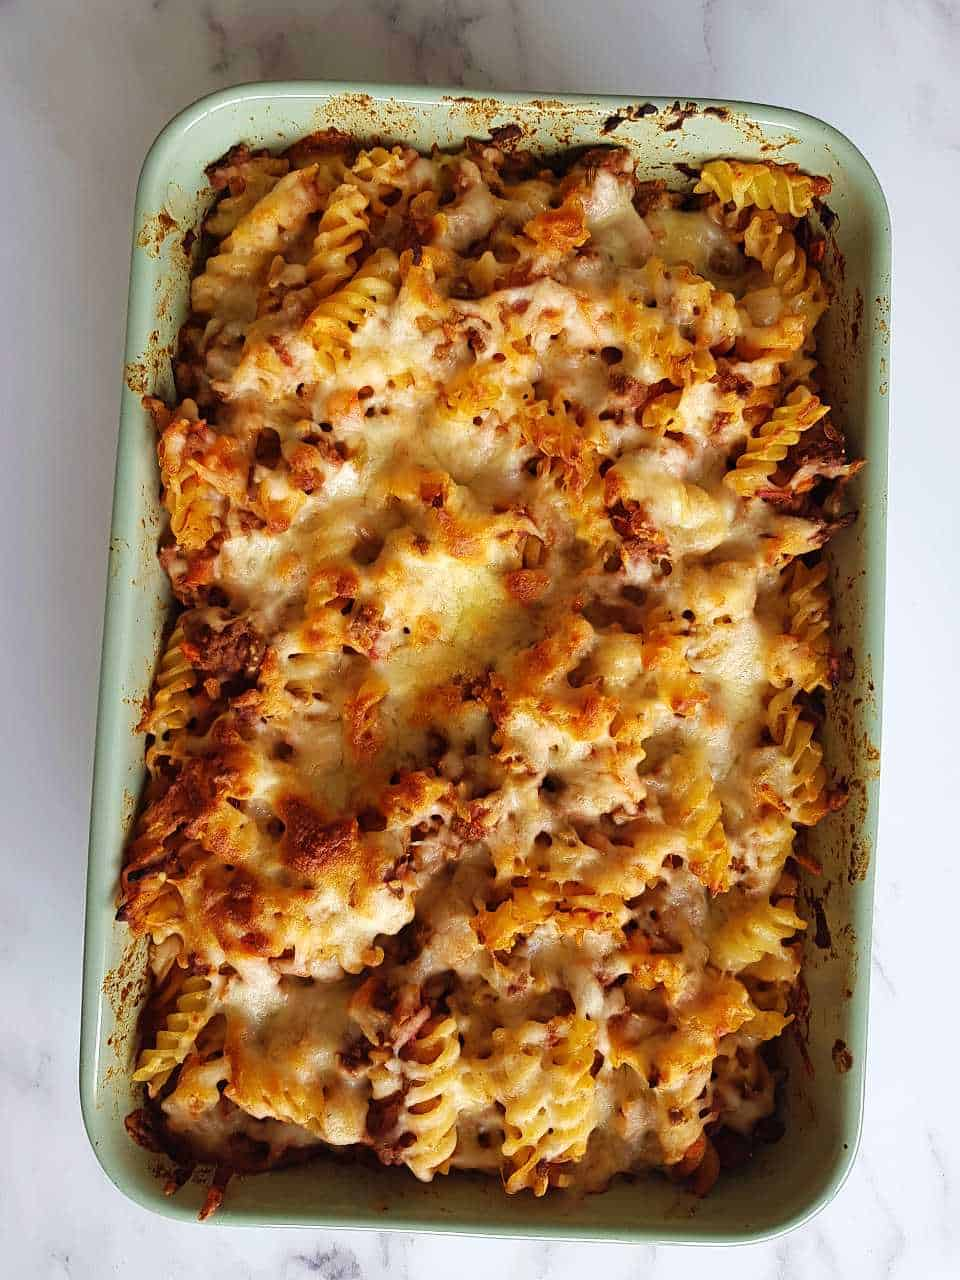 Minced beef pasta bake in a casserole dish on a marble table.